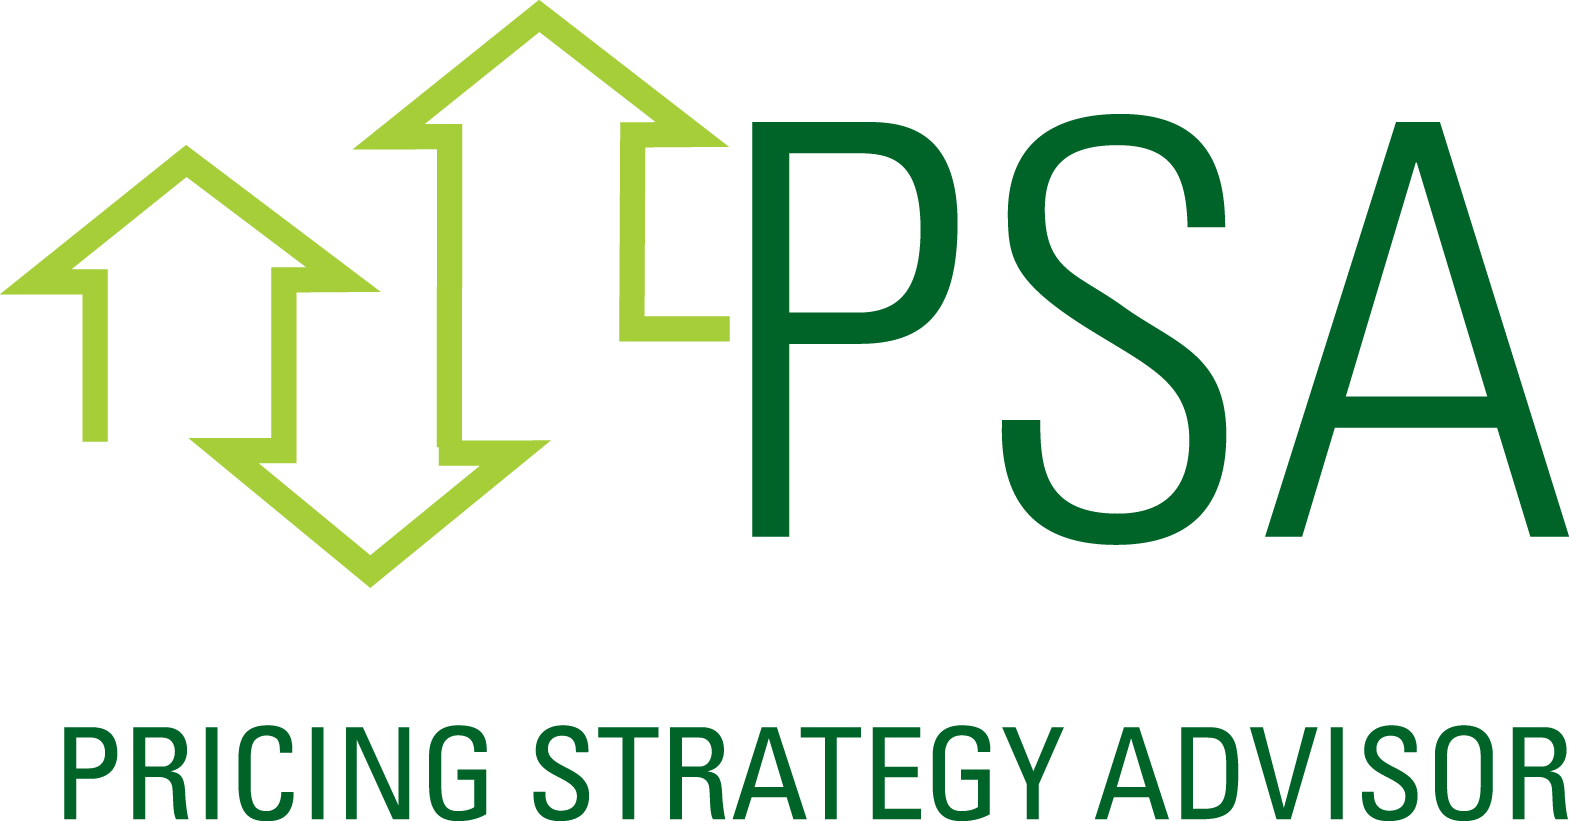 Pricing Strategy Advisor logo